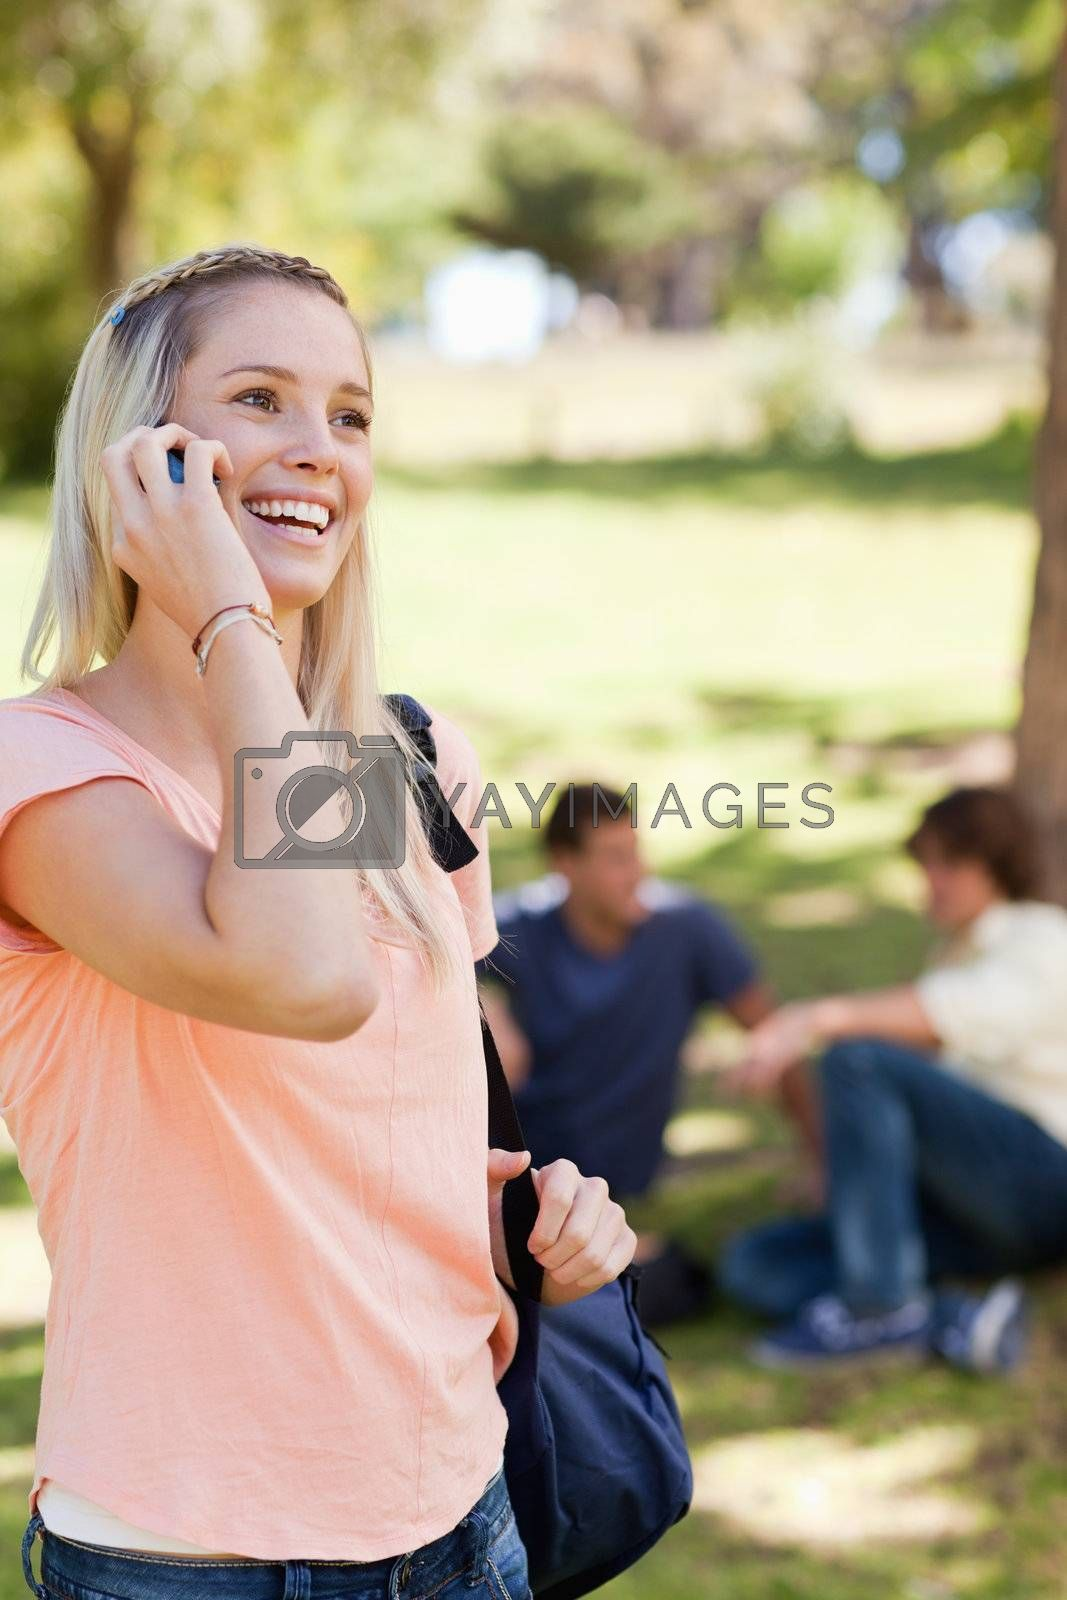 Teenager on the phone in a park with friends in background